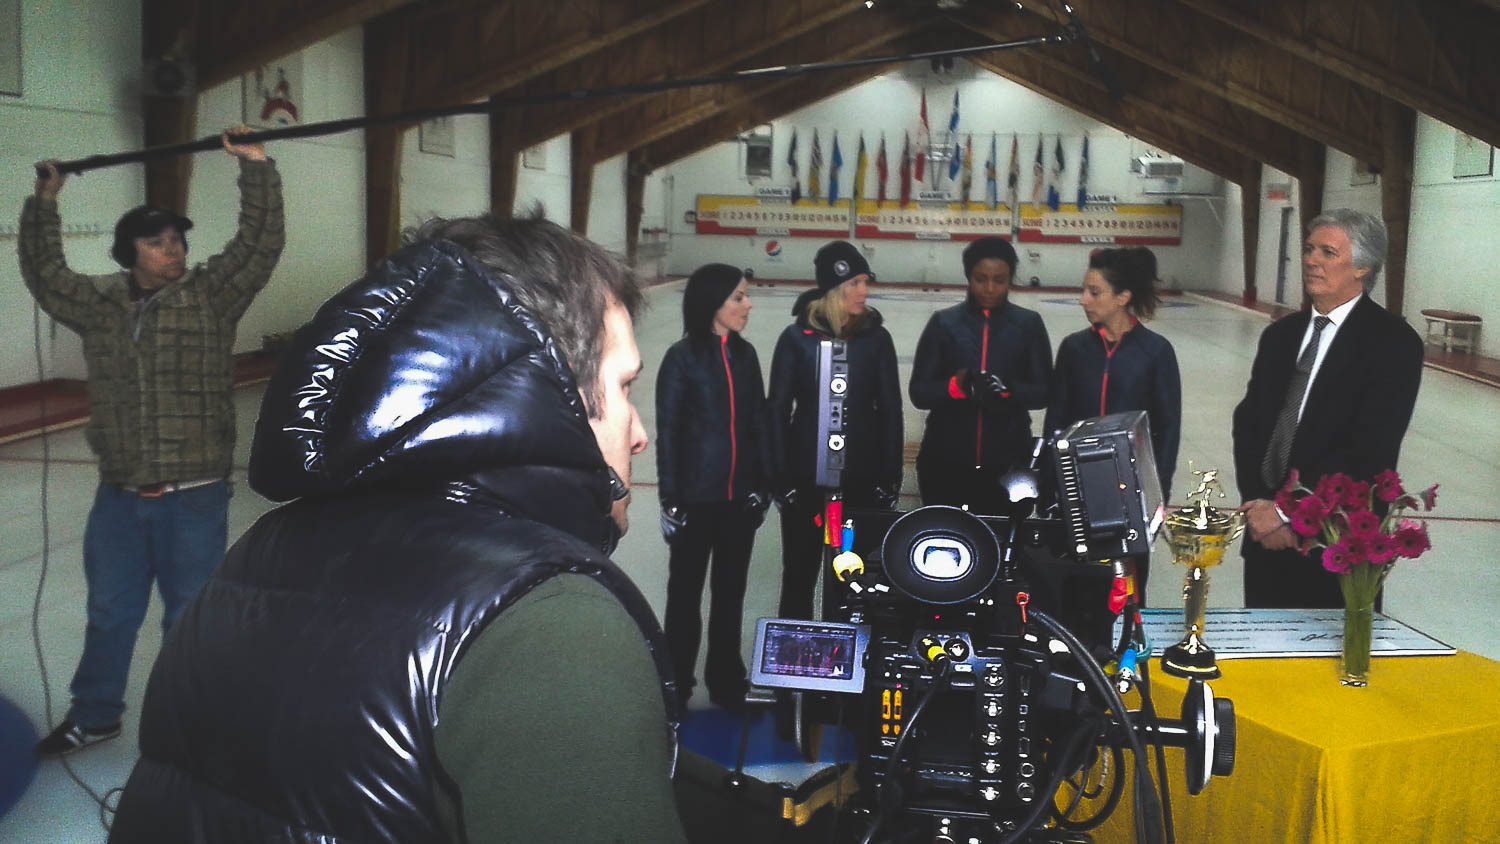 During the reshoot of a scene from the film Sweeping Forward of the Director Patricia McDowell Interior scene of a curling team winning the tournament. The film was produced in Montreal and the photography was done by Richard Duquette, cinematographer from Montreal.